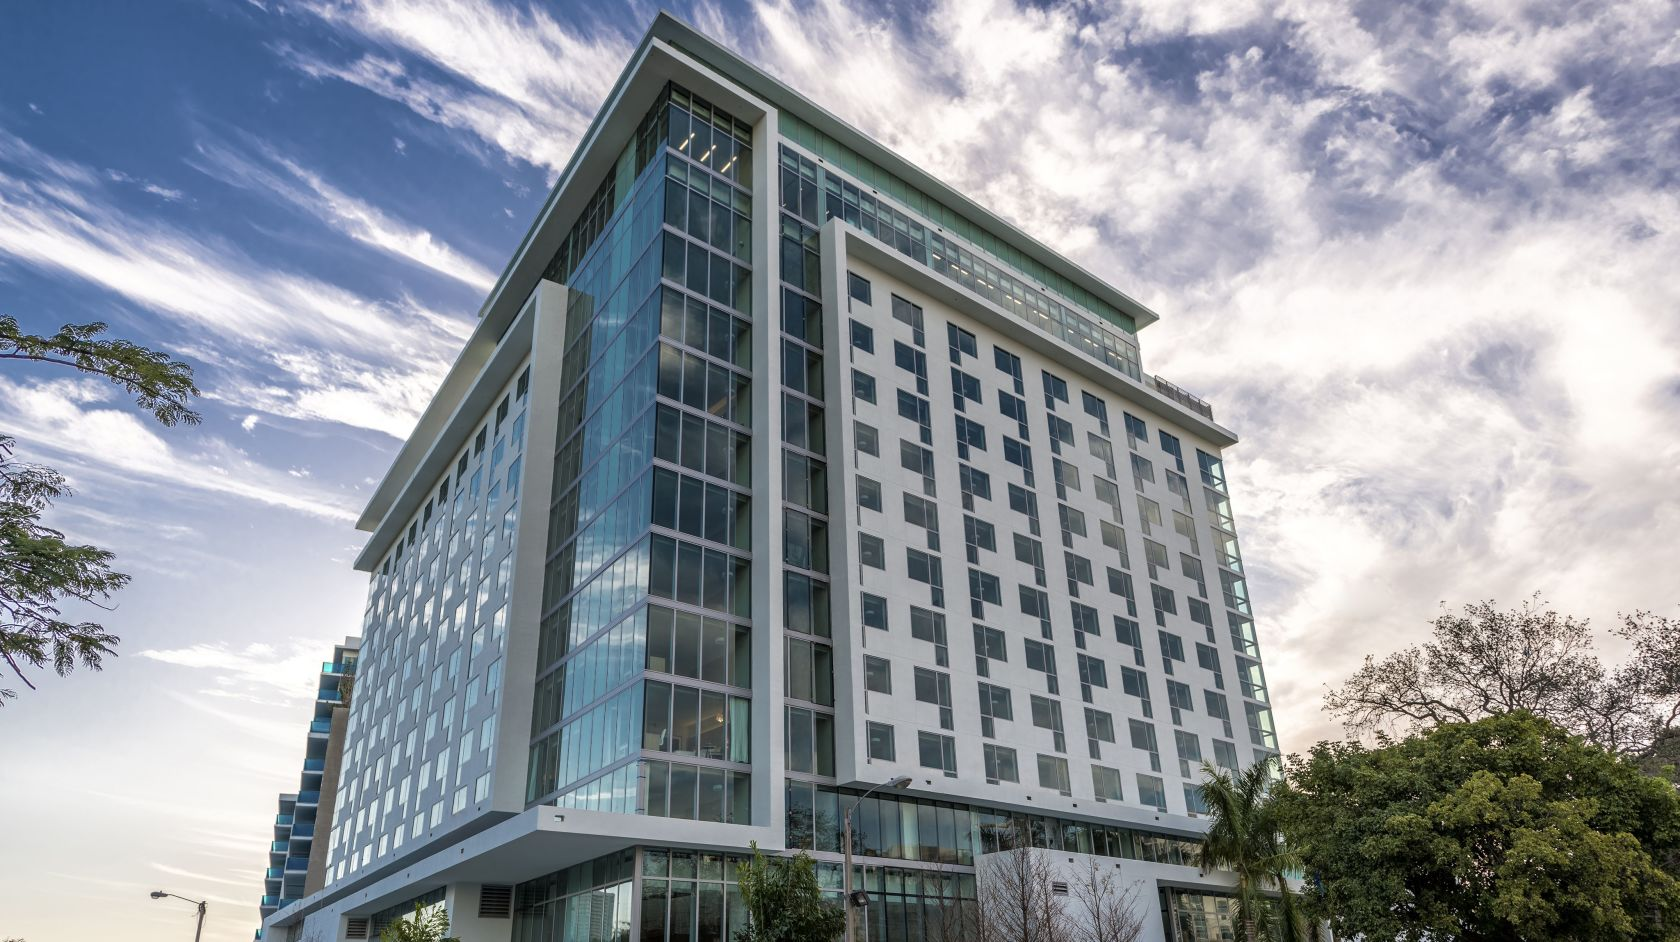 Daytime exterior view of Novotel Miami Brickell hotel